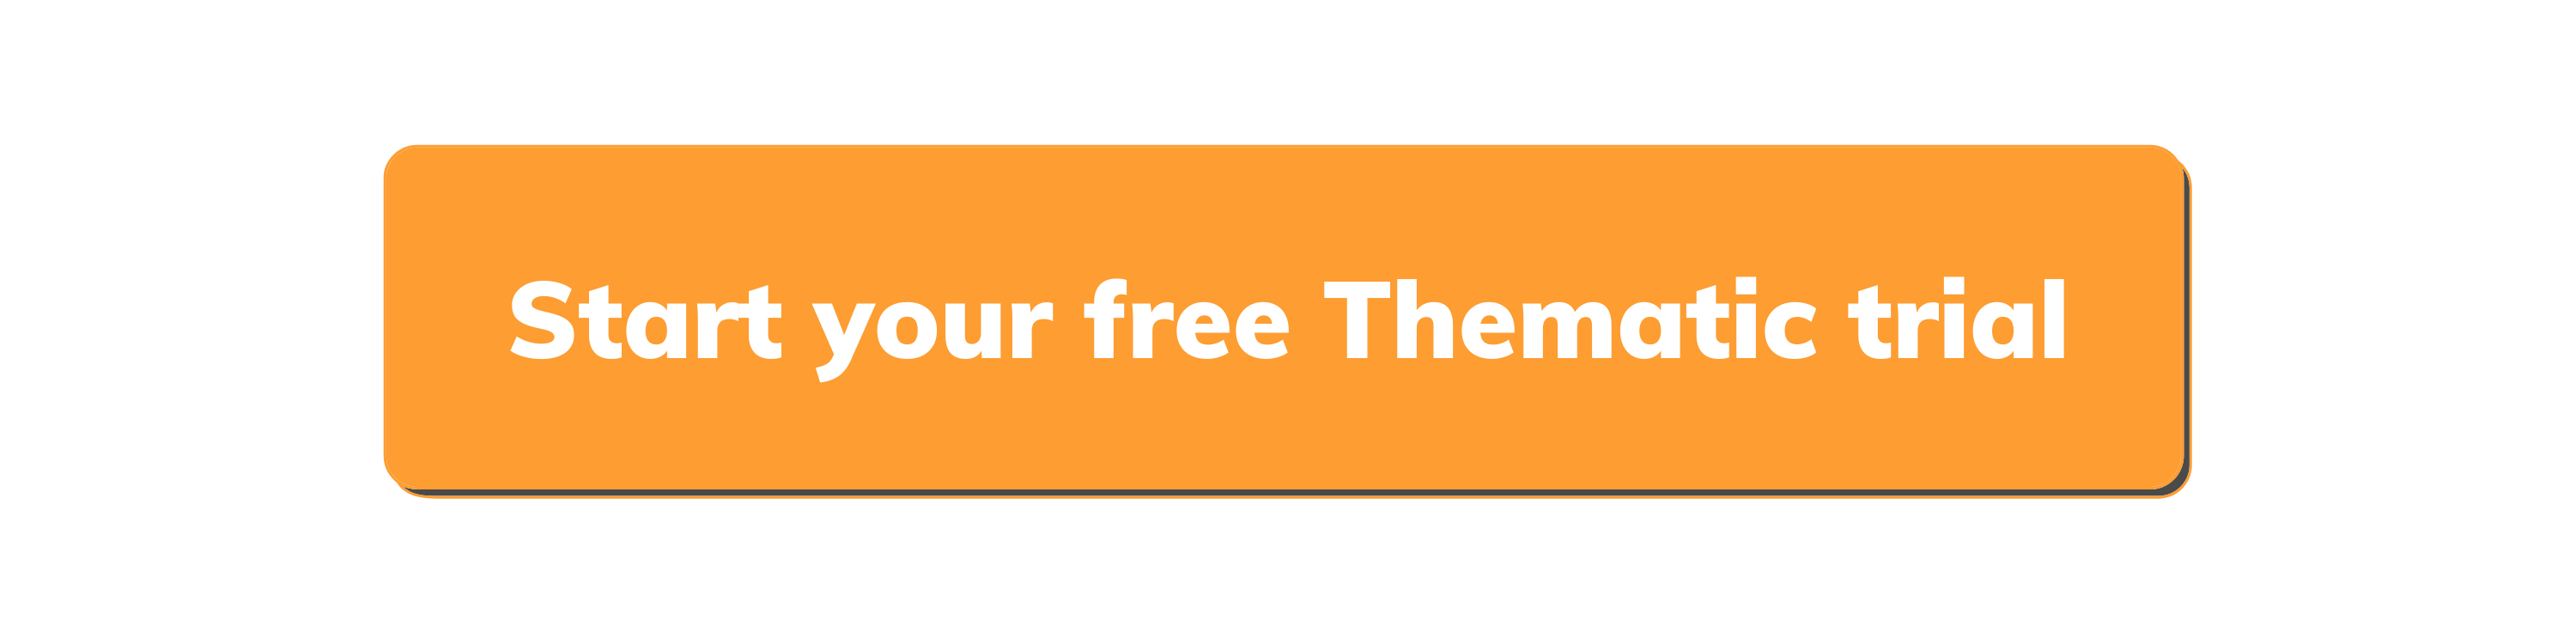 Start a free Thematic trial